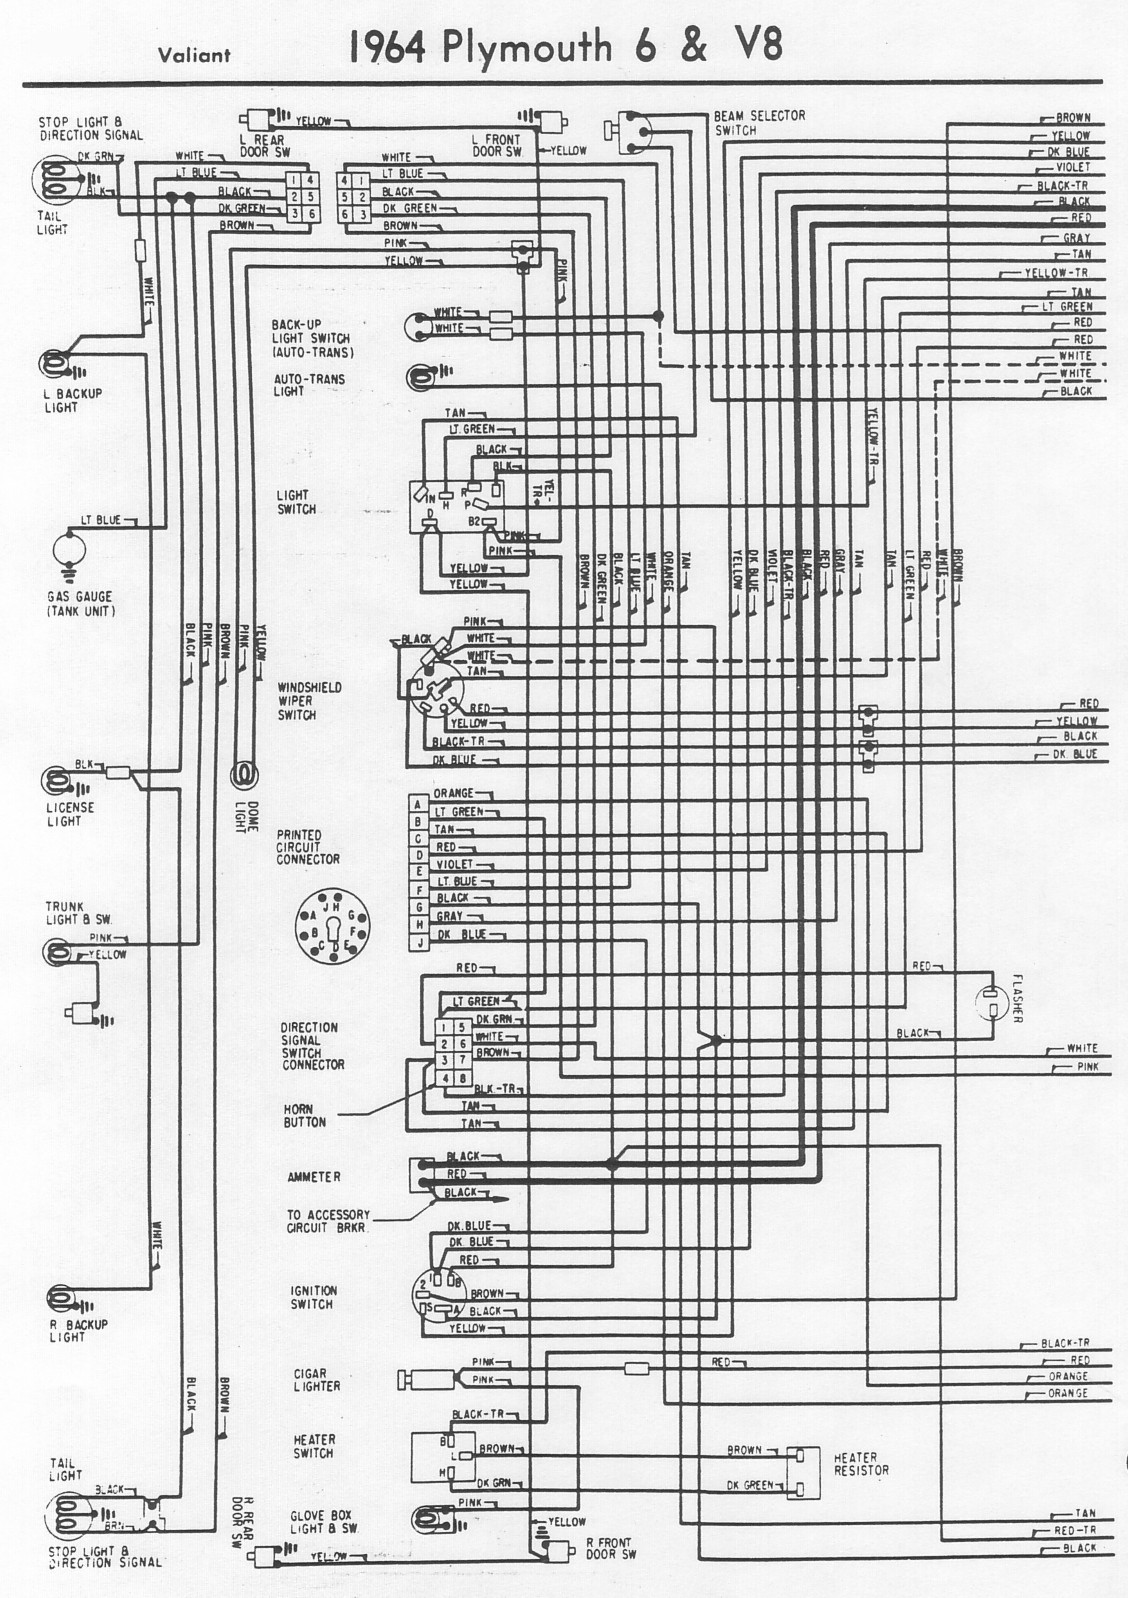 Lmf Manufacturing Wiring Diagram - Wiring Diagram •